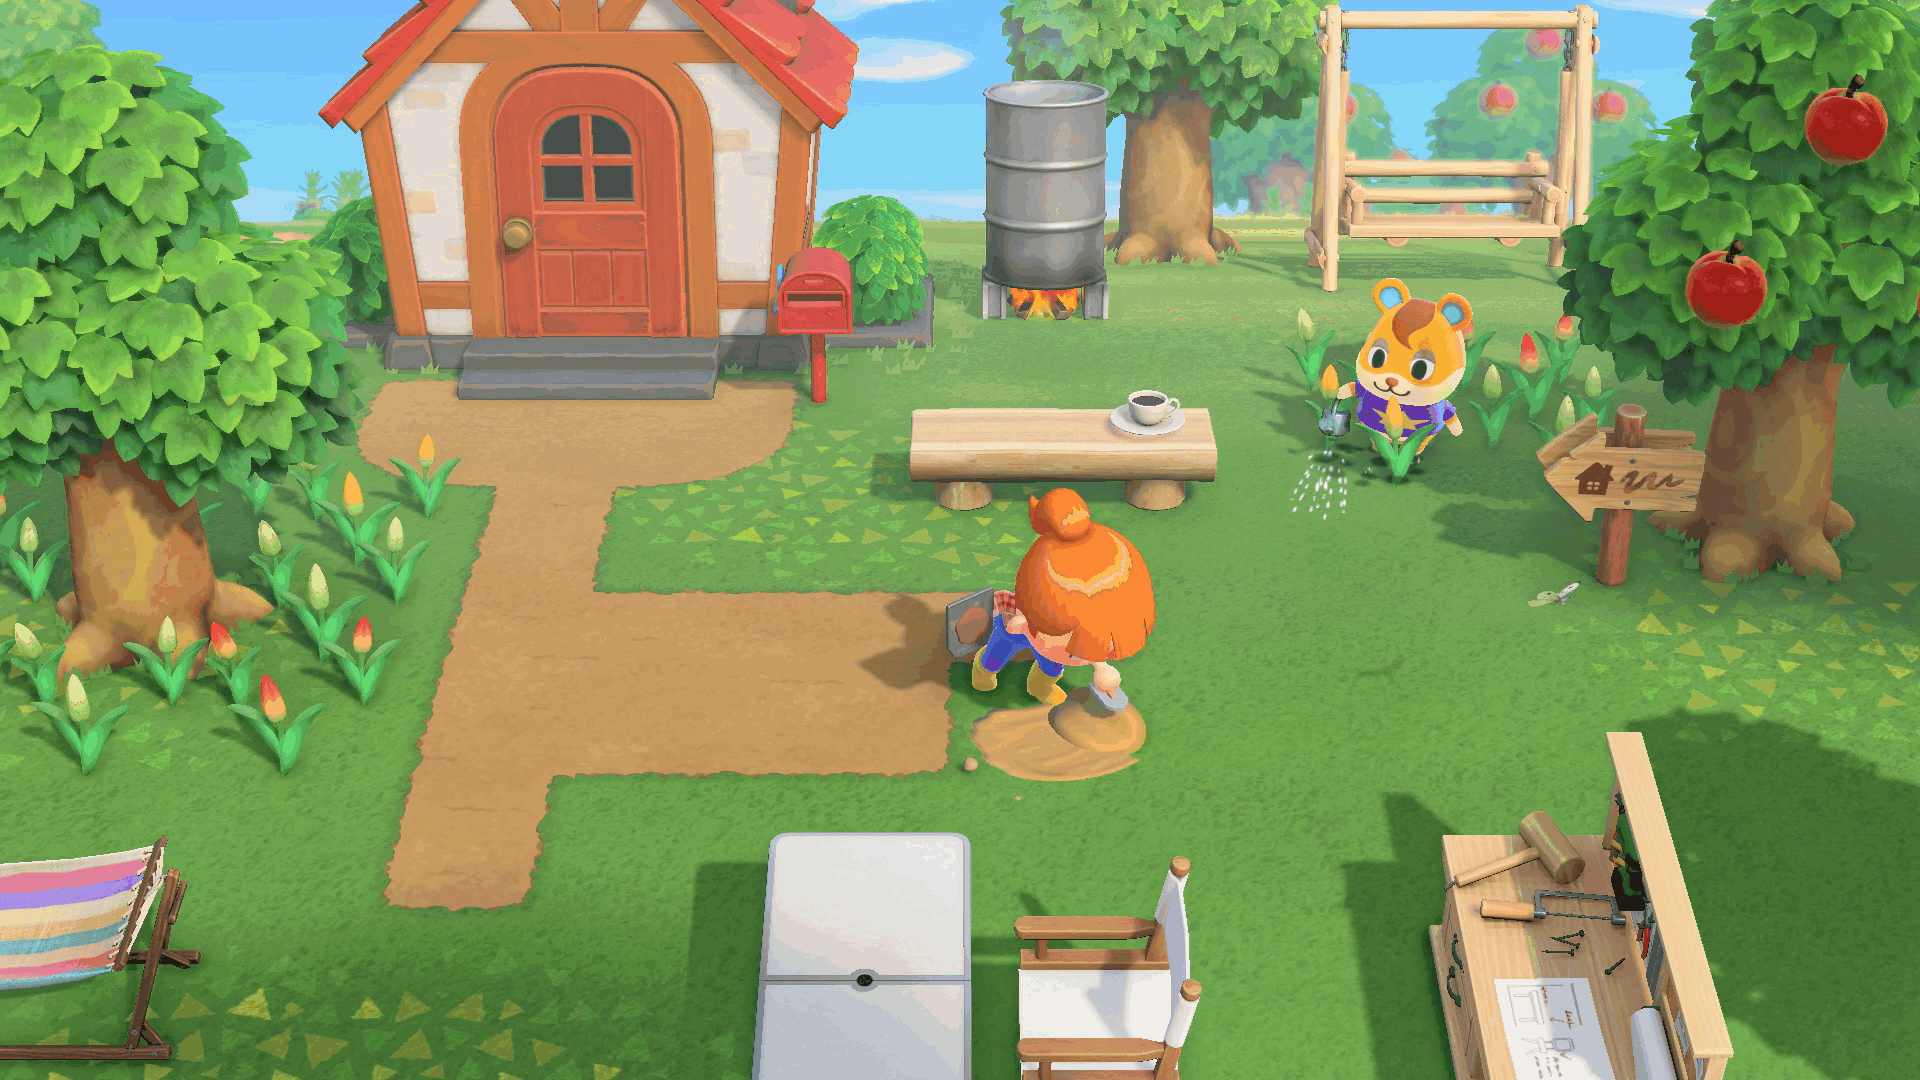 Animal Crossing: New Horizons Delayed To March 20, 2020